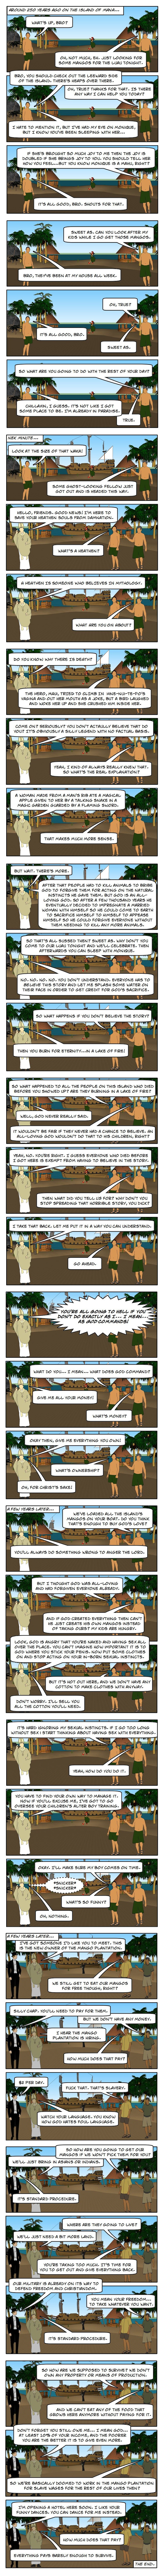 (Comic) The Island Of Mana: A Parable About Colonization In The Pacific